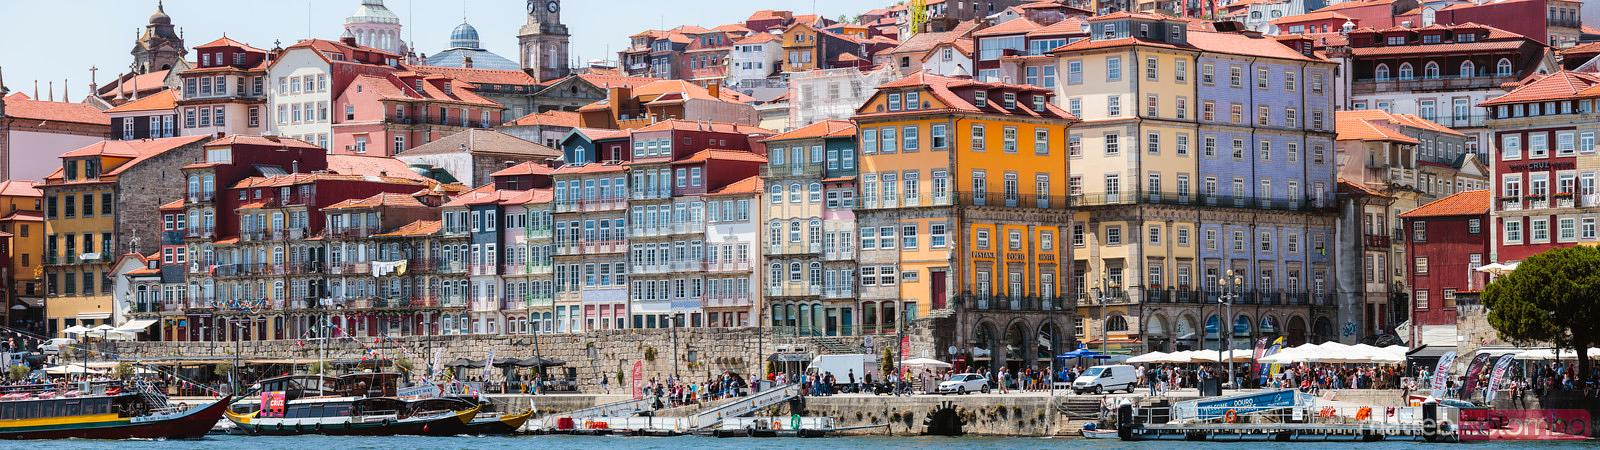 Ribeira district panoramic, Porto, Portugal